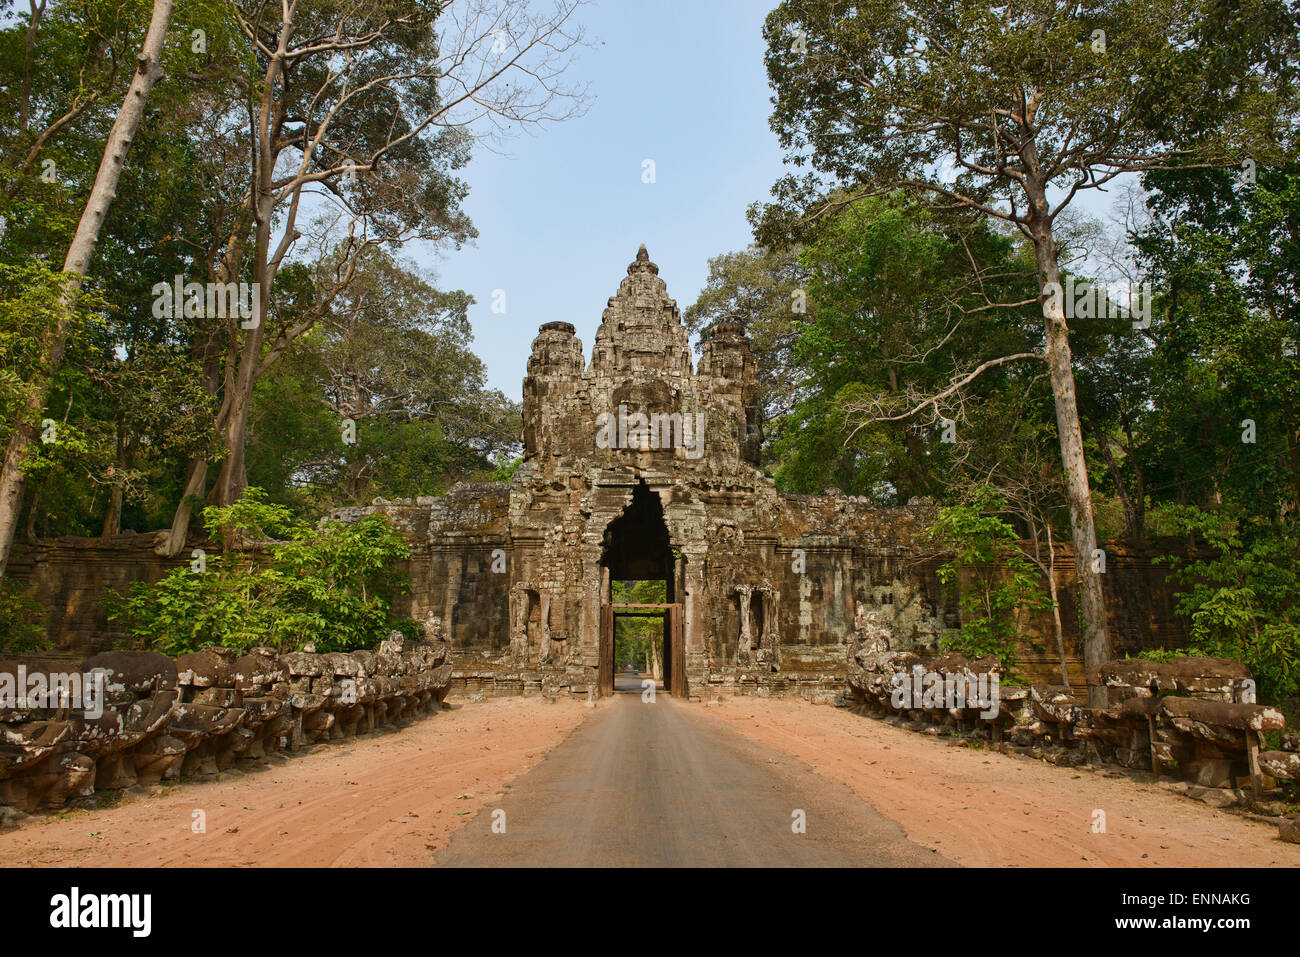 The East Gate of Angkor Thom at Angkor Wat in Siem Reap, Cambodia - Stock Image